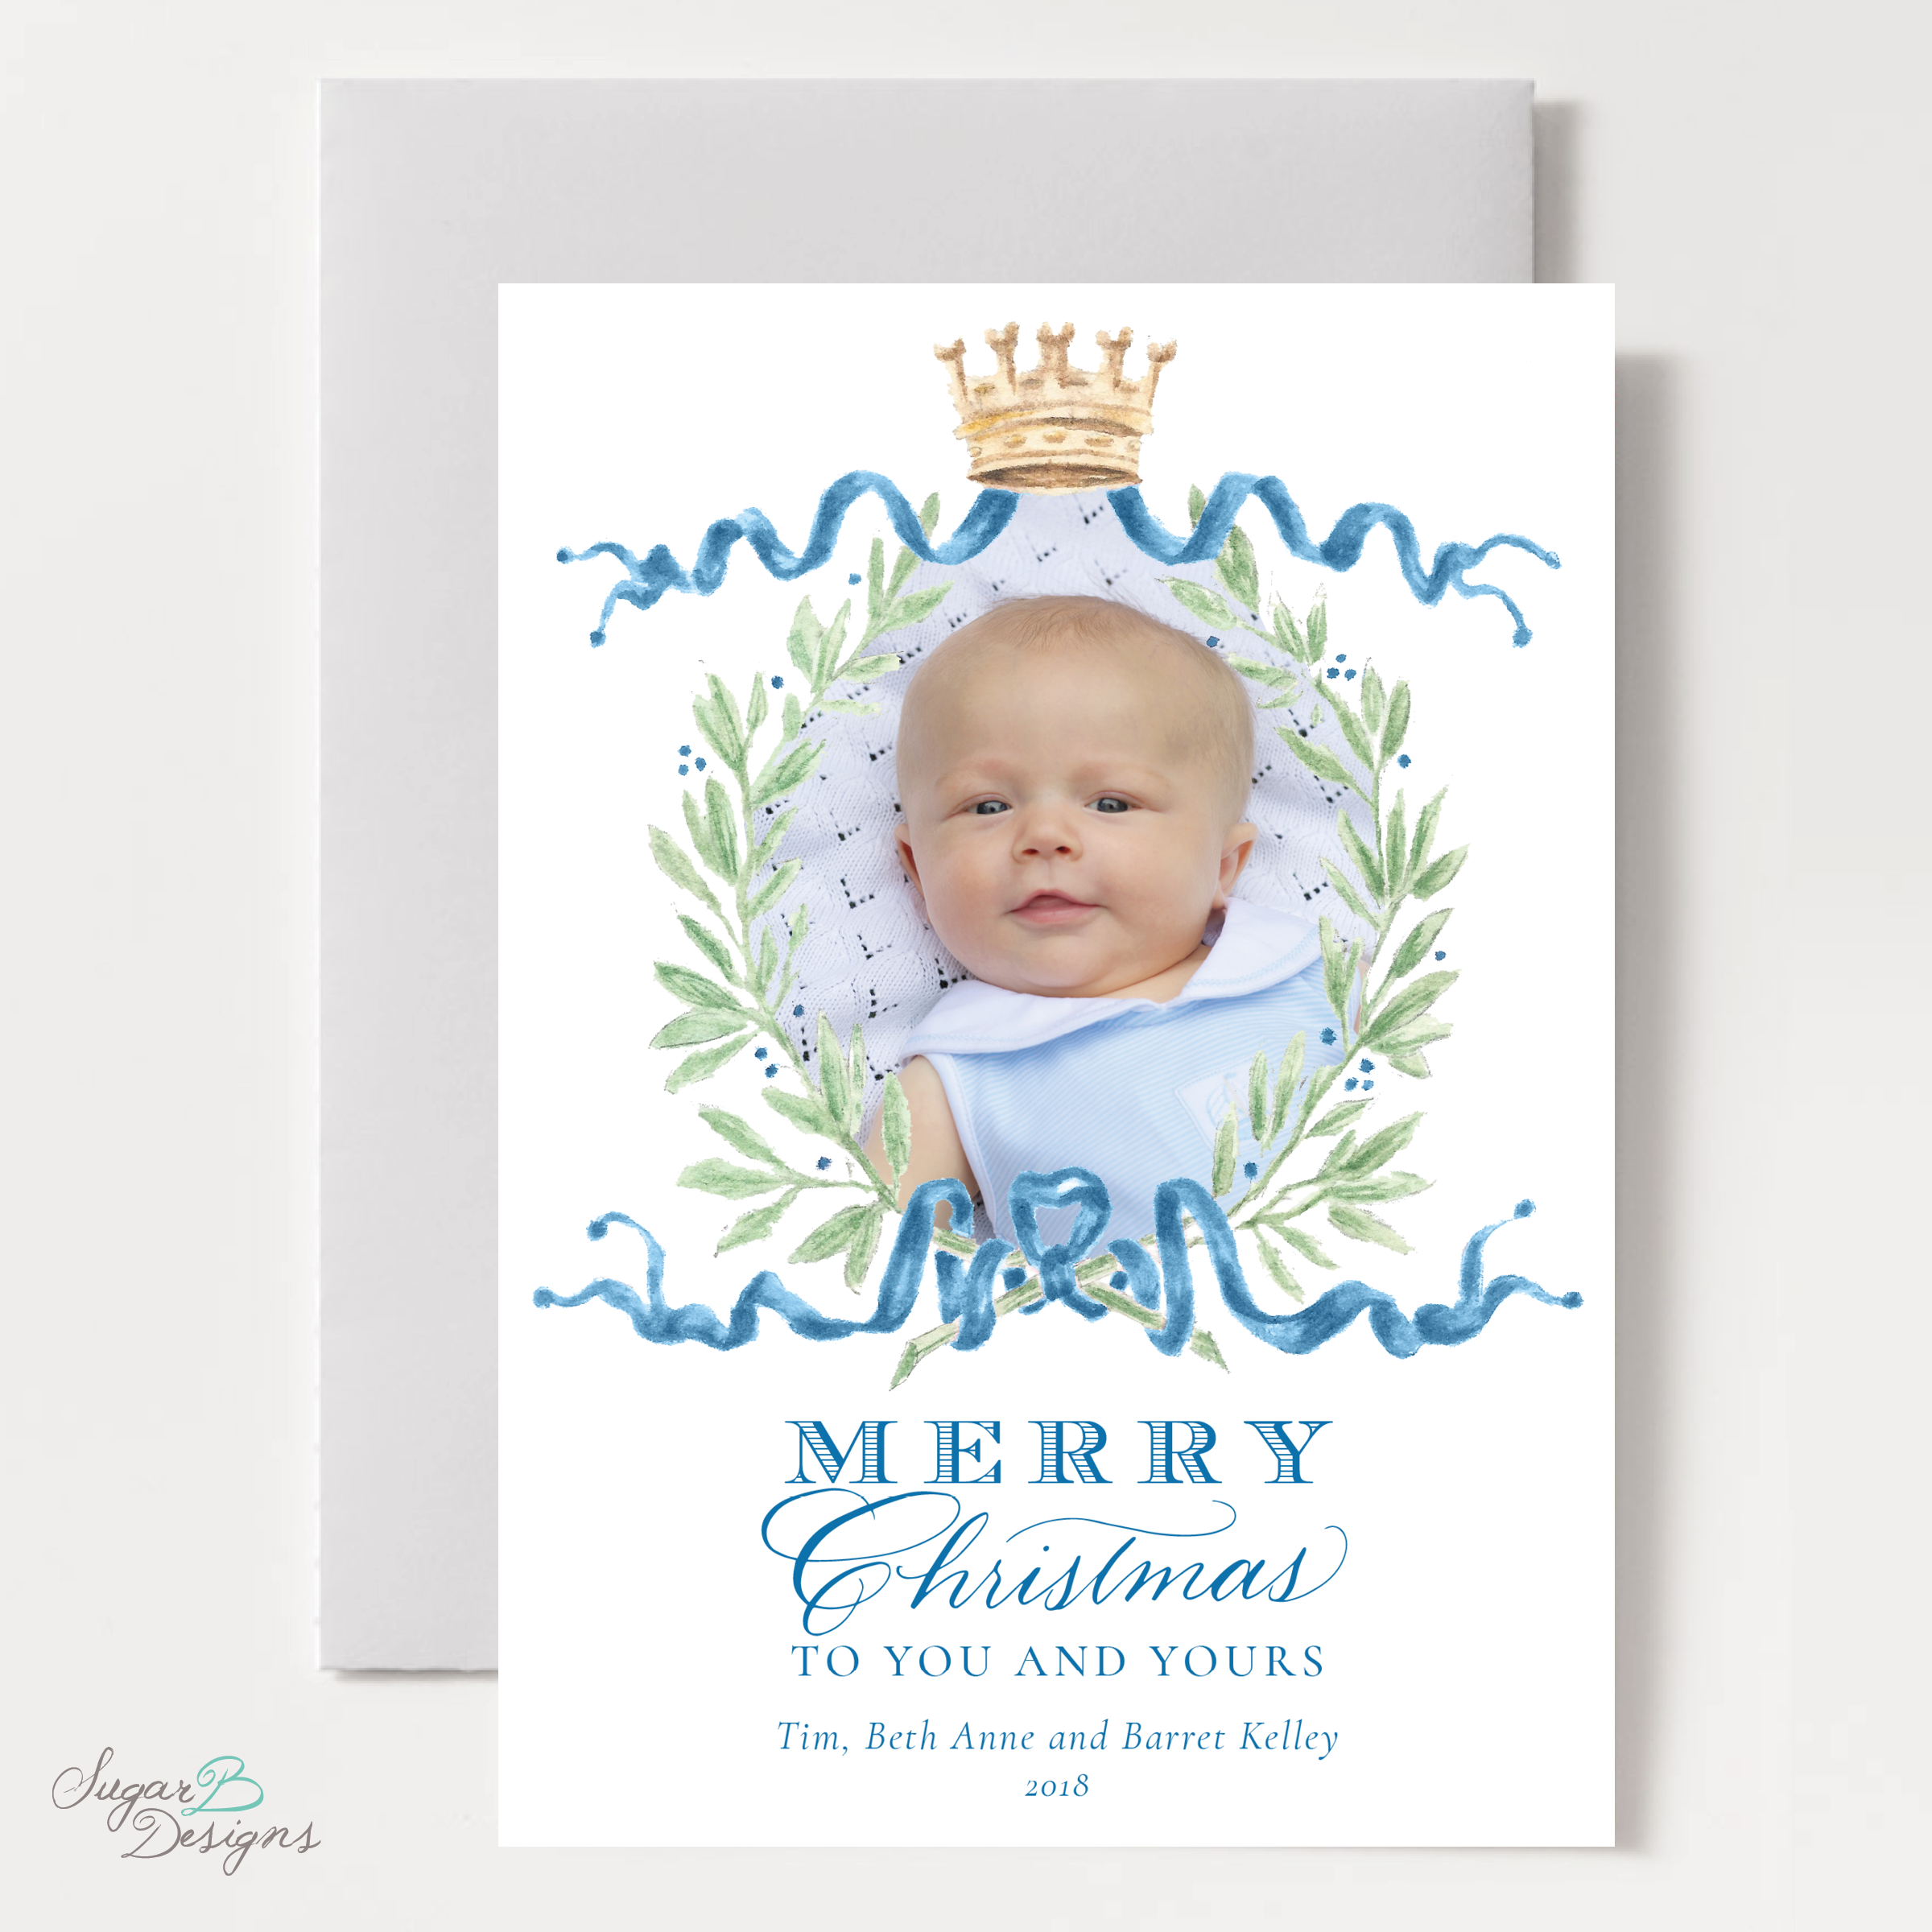 Royal Wreath Blue Change of Address Christmas Card front by Sugar B Designs.png